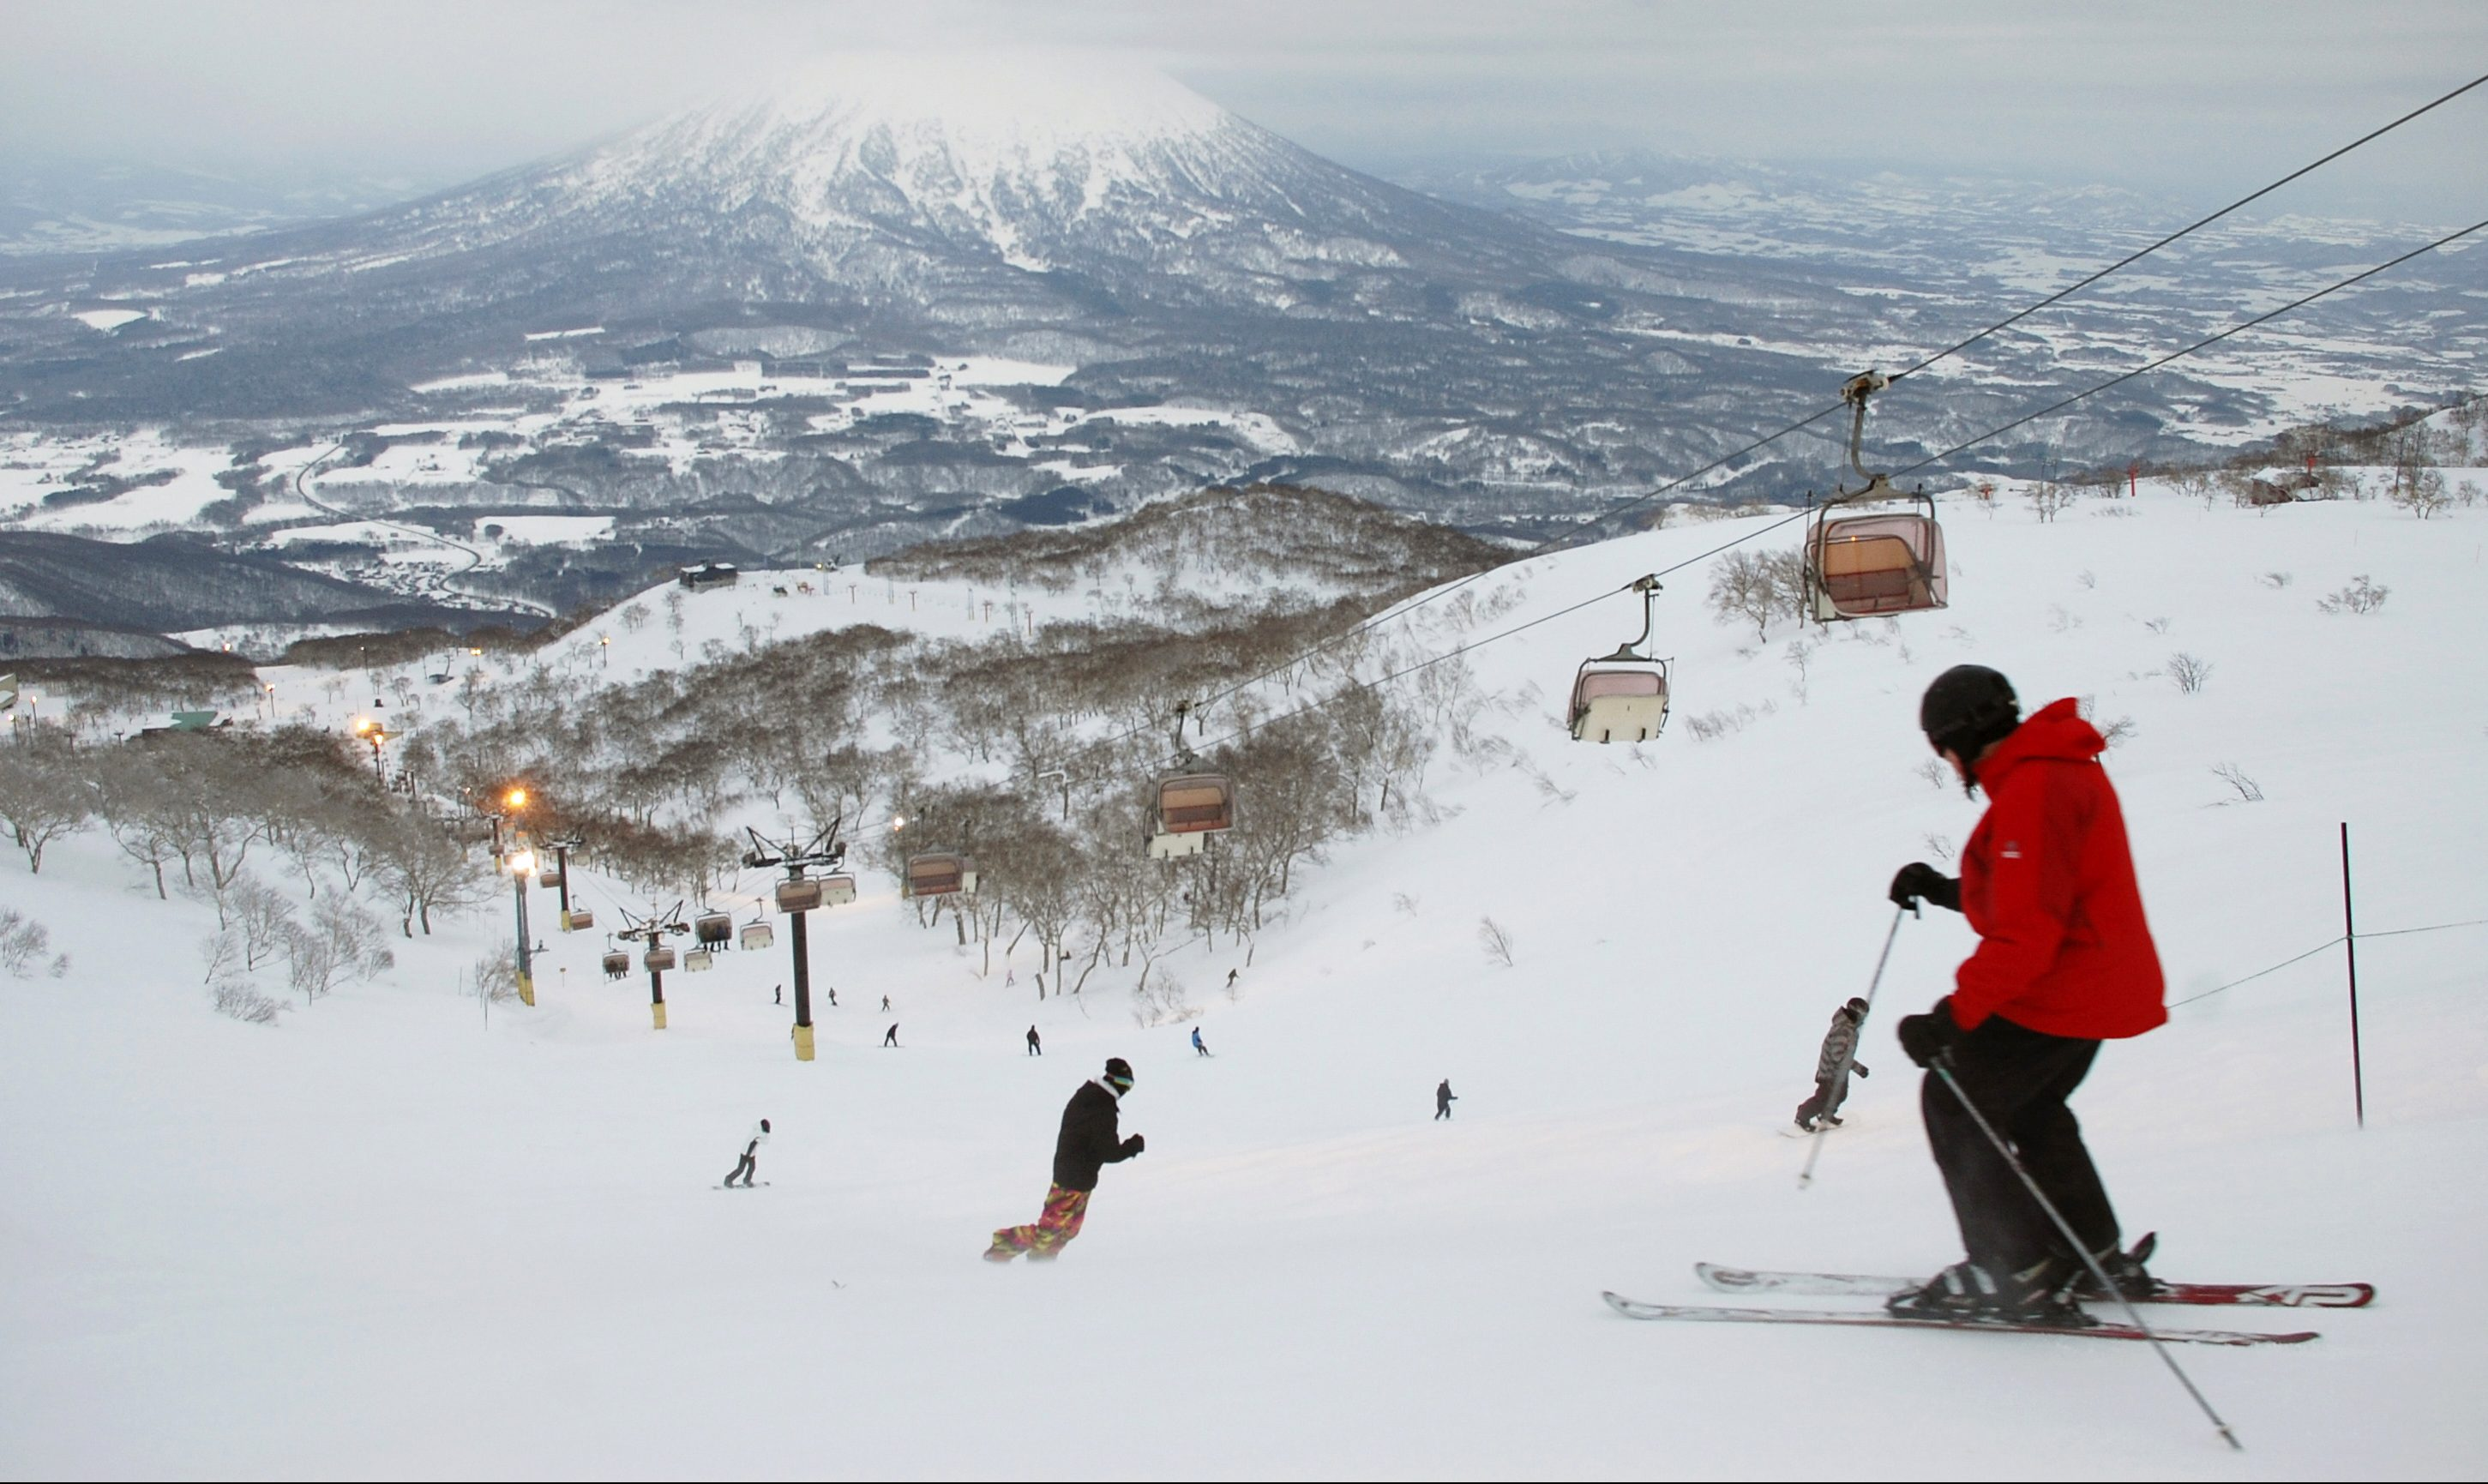 foreigners enchanted with japan's perfect powder are changing the